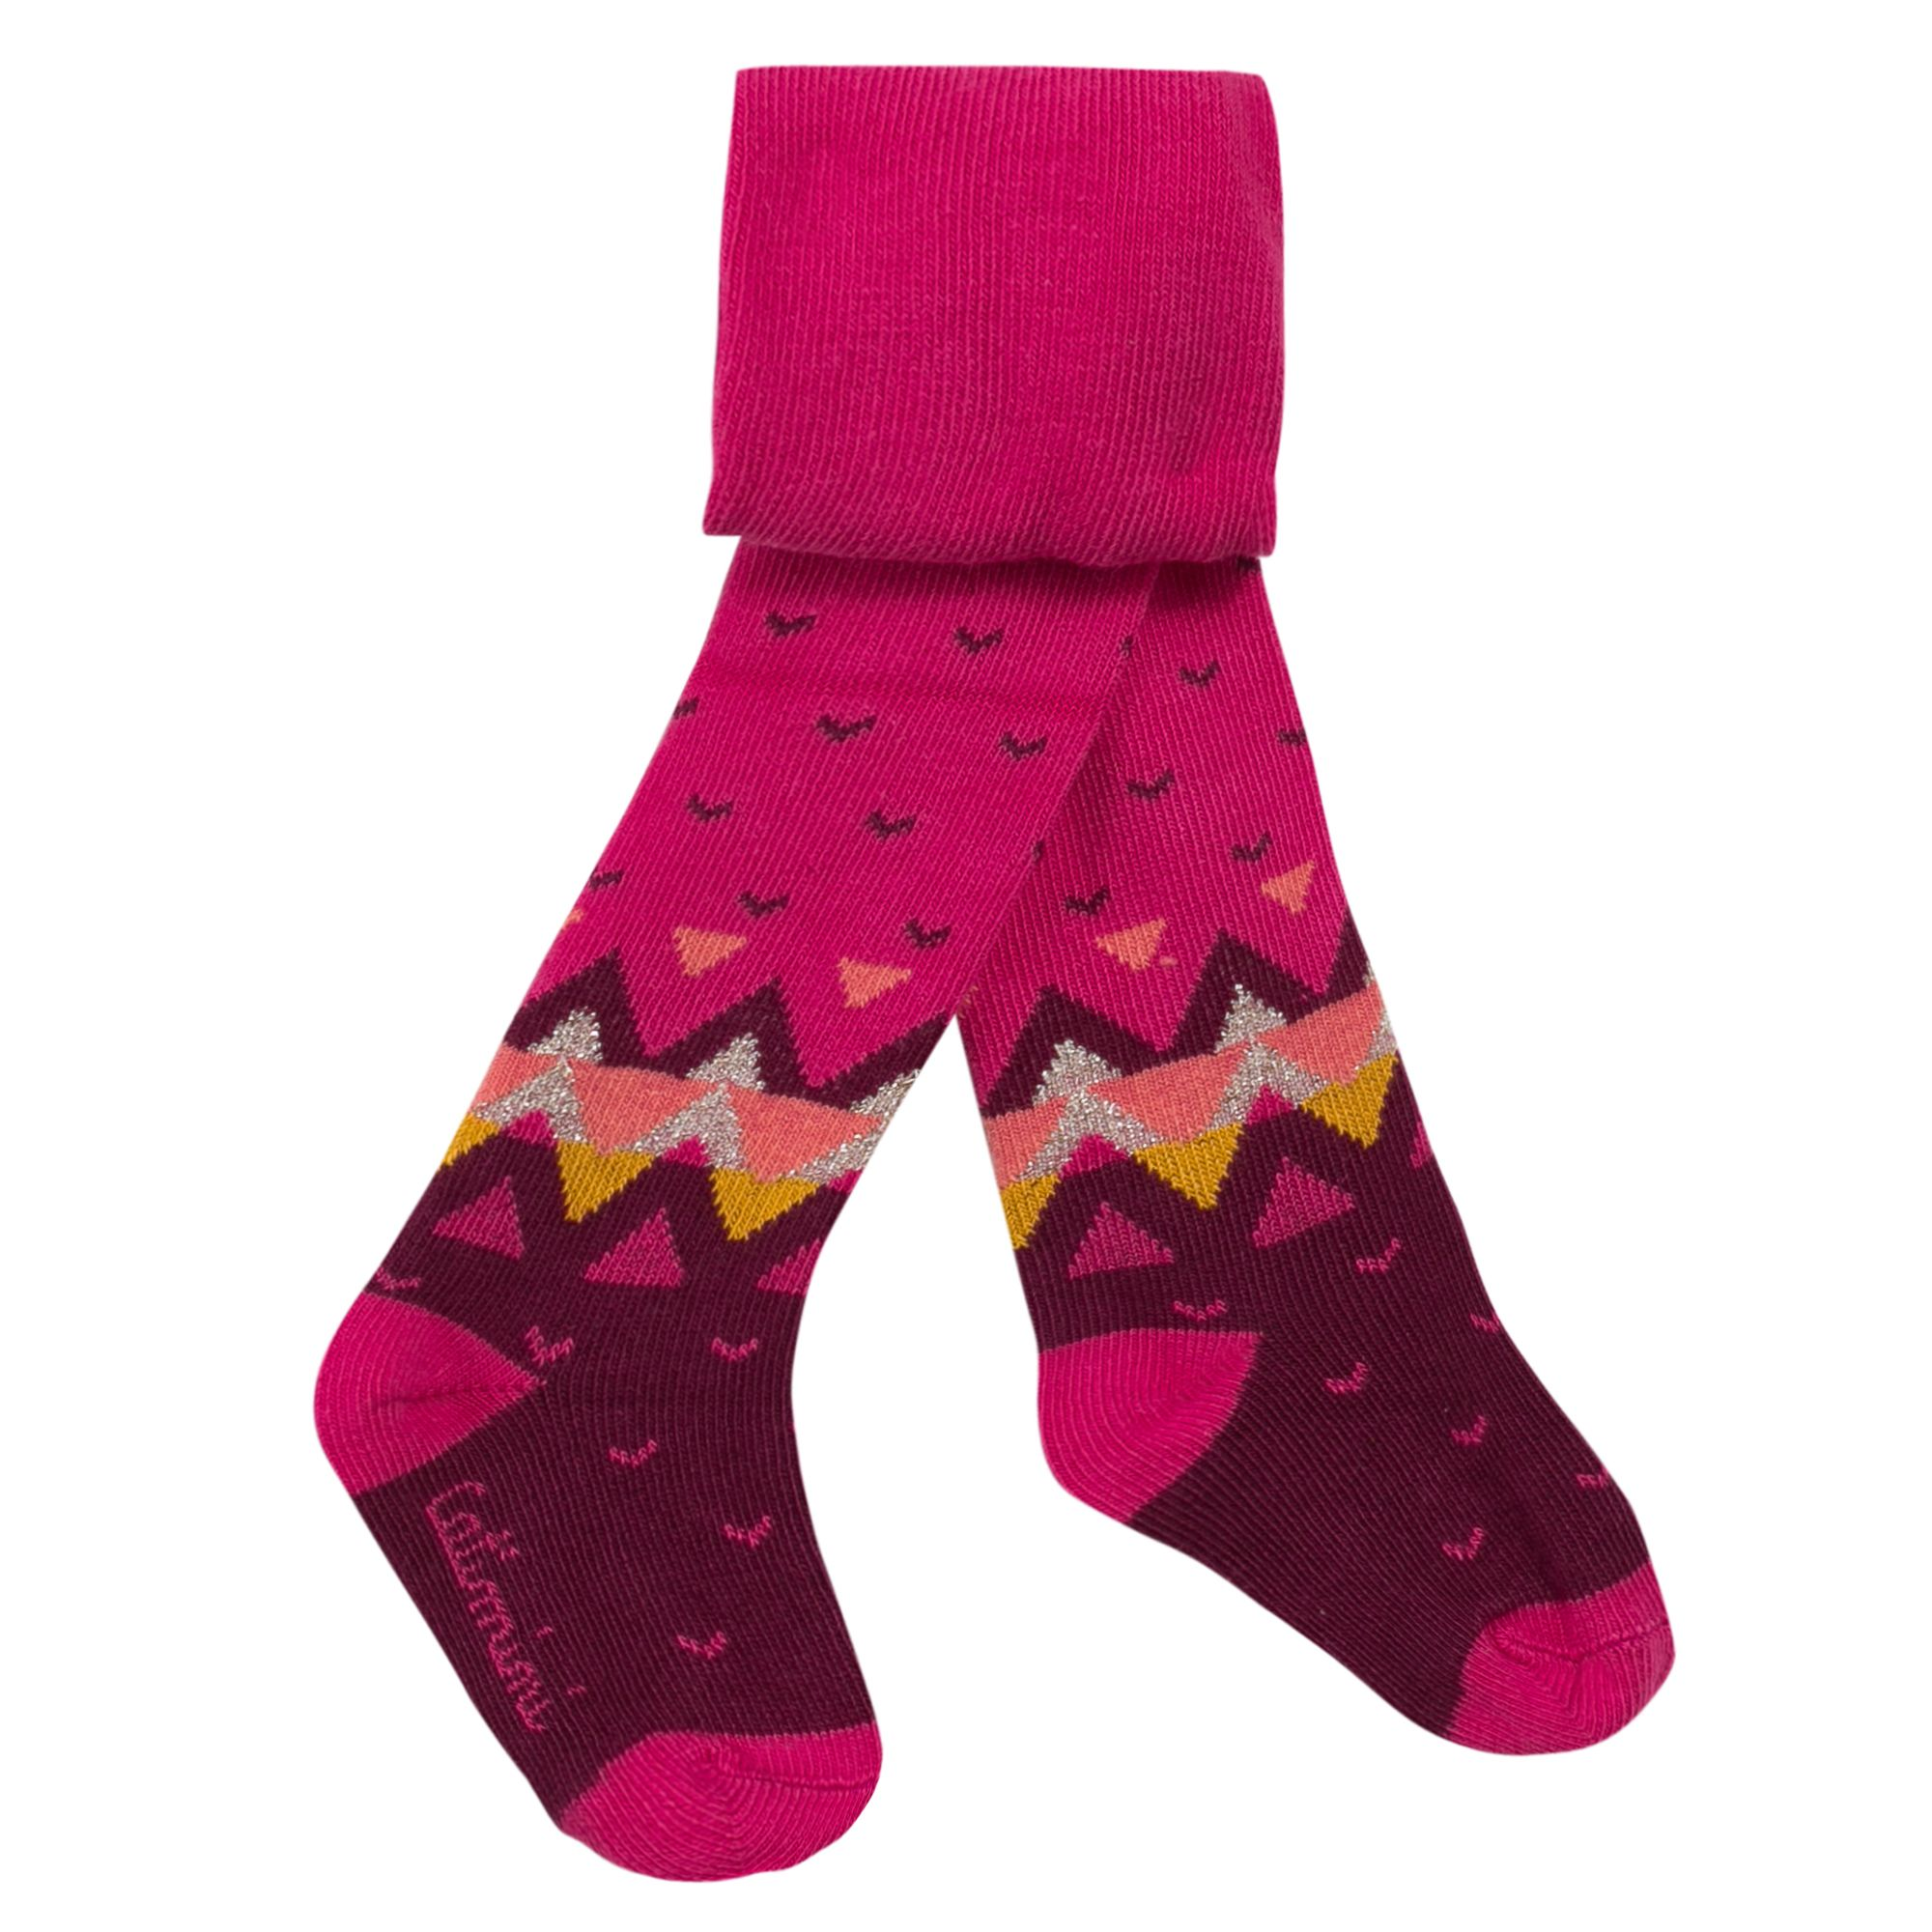 Catimini Catimini Girls fuchsia mix and match tights, Pink